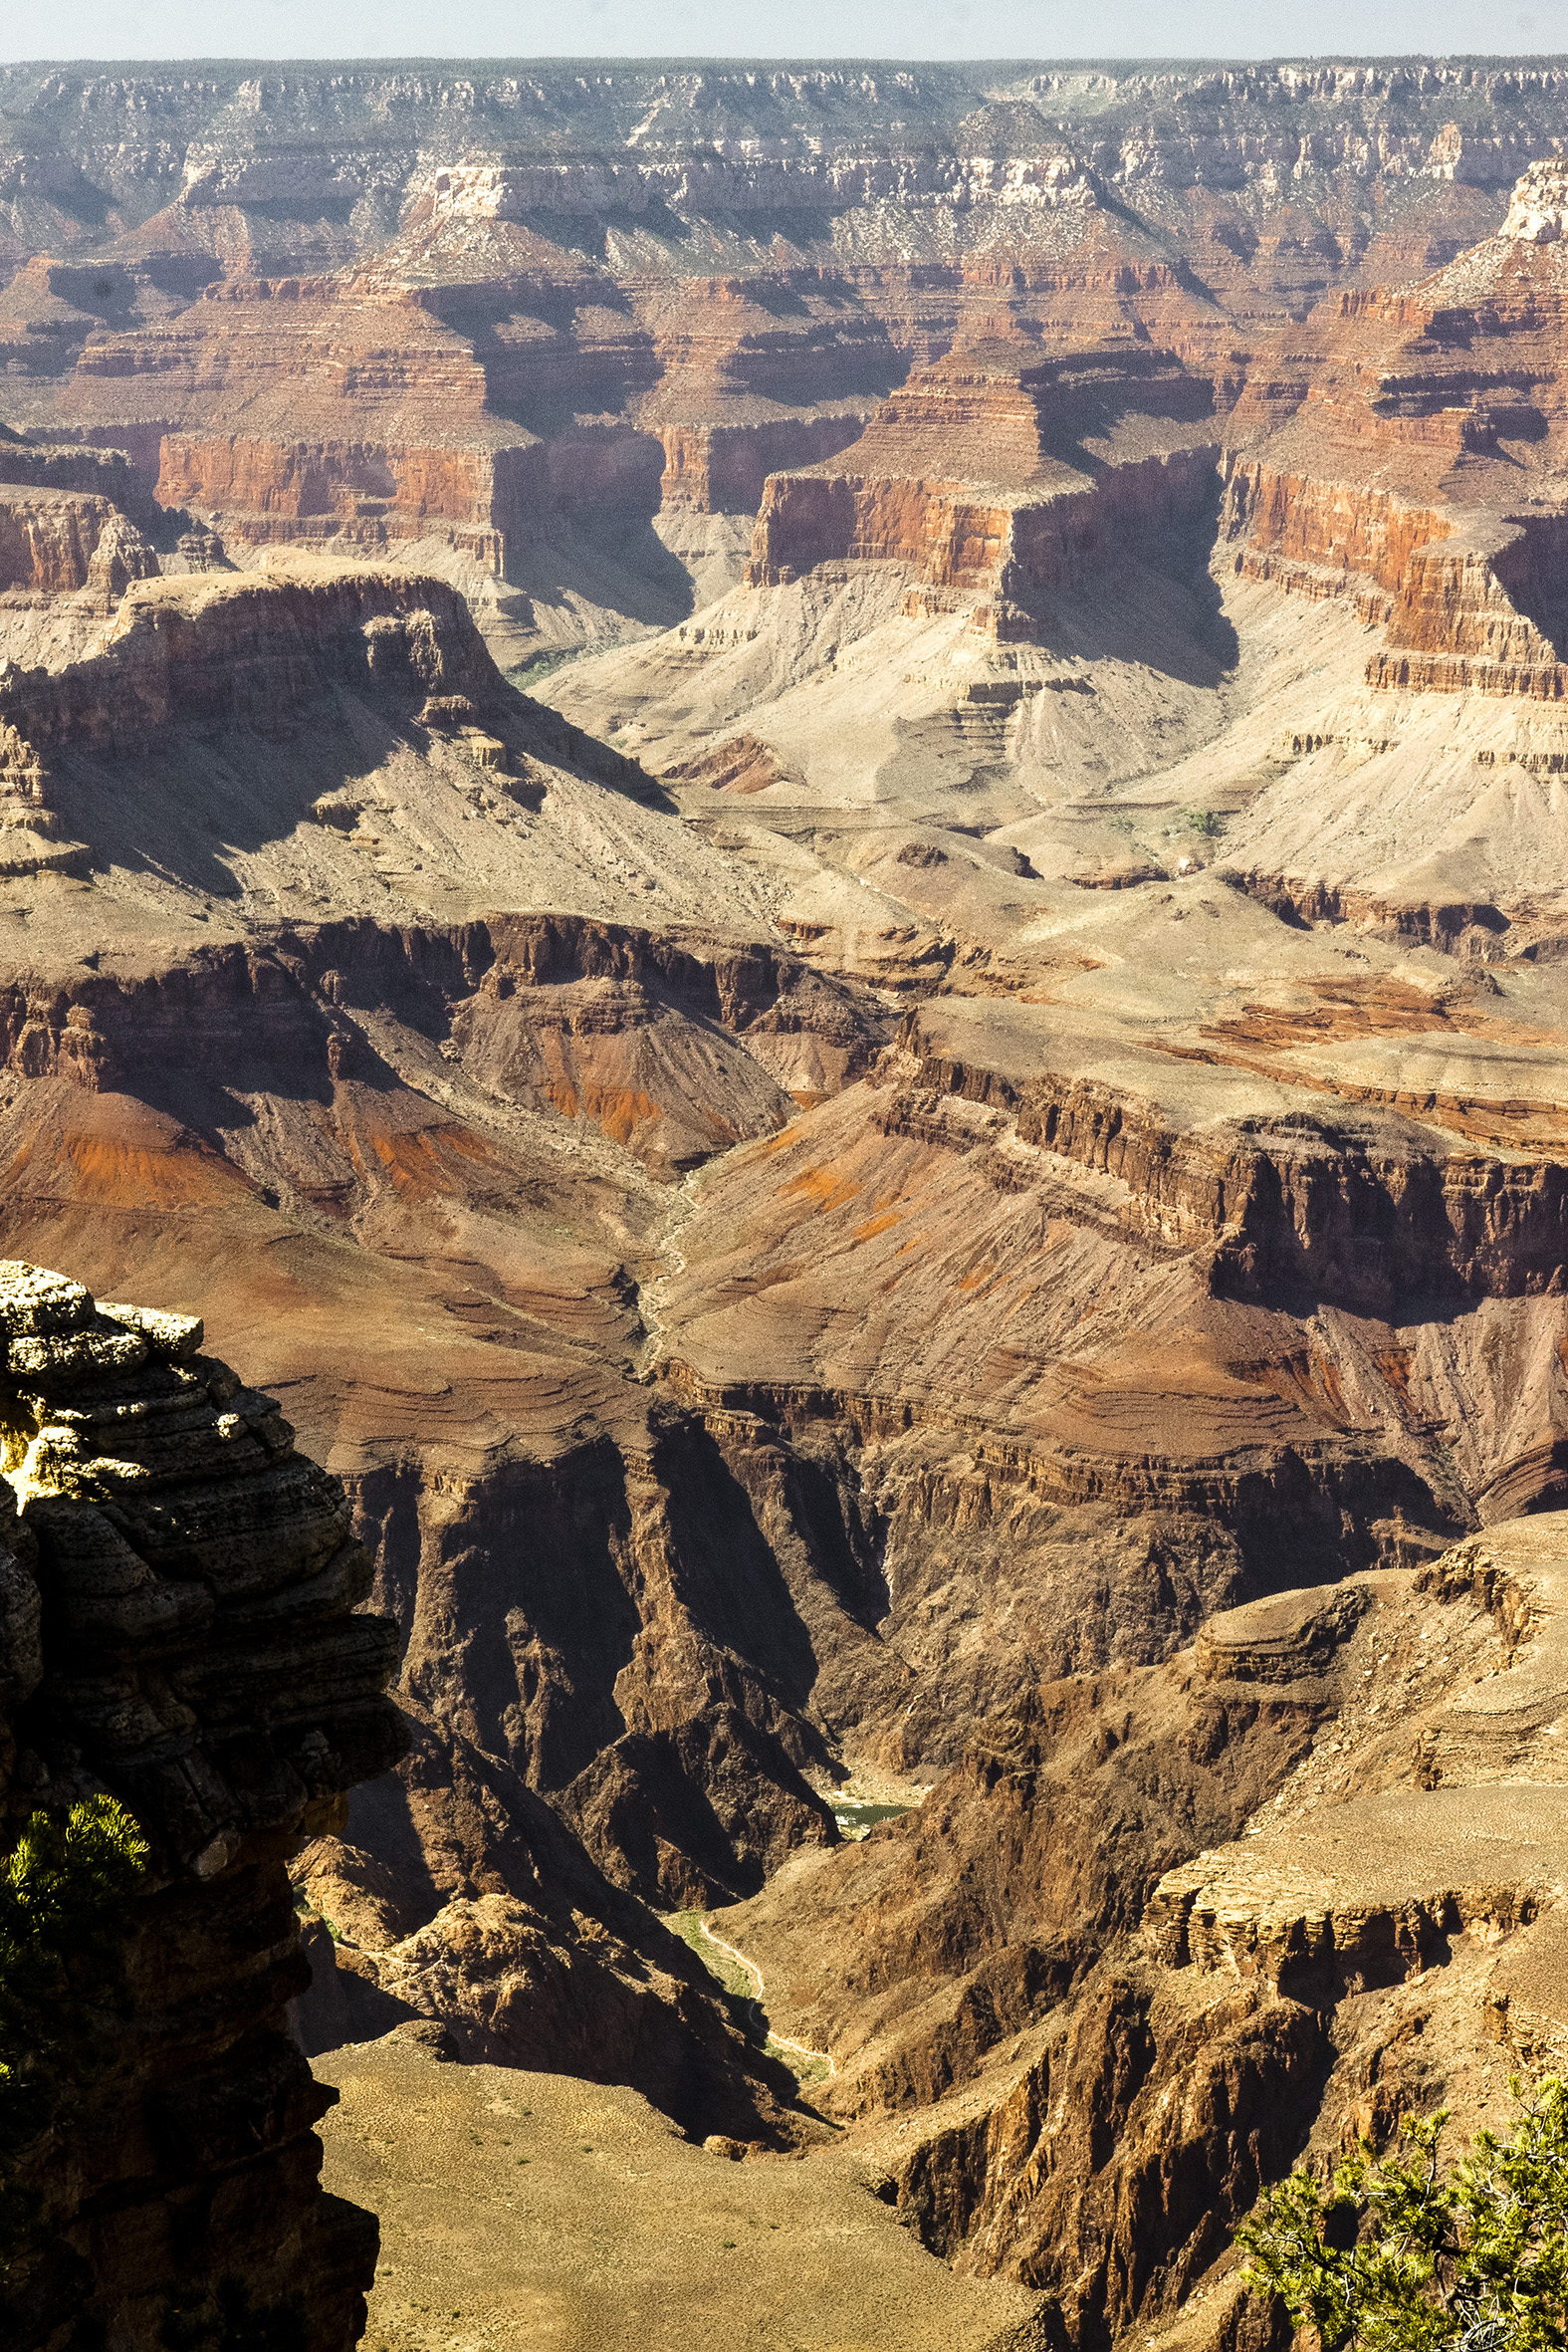 voyages-grand-canyon-usa-ouest-2012-marie-colette-becker-14